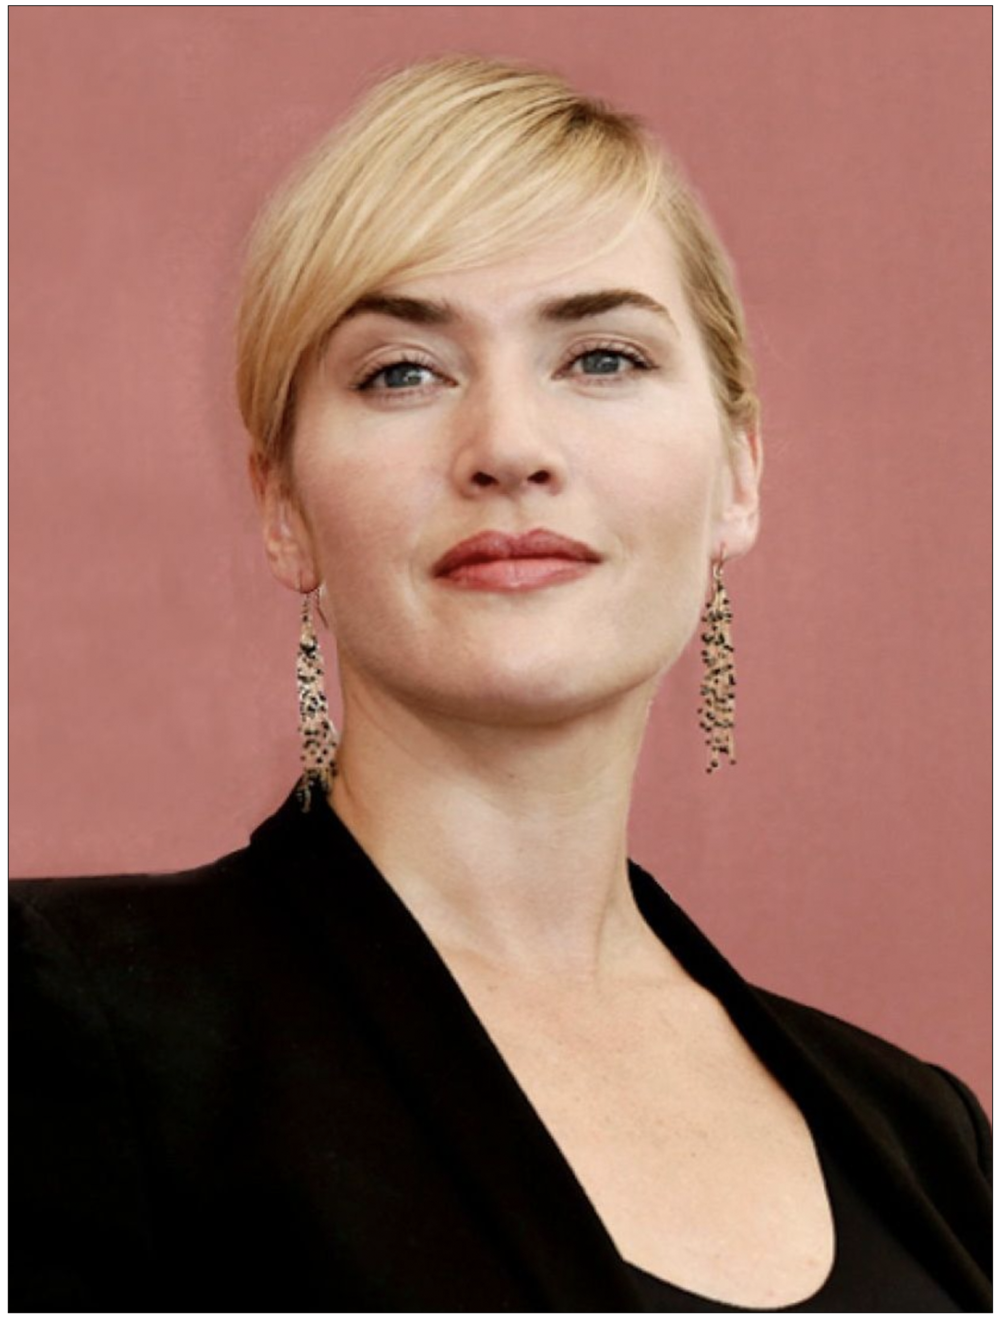 Targeted: Actress Kate Winslet (c) Creative Commons